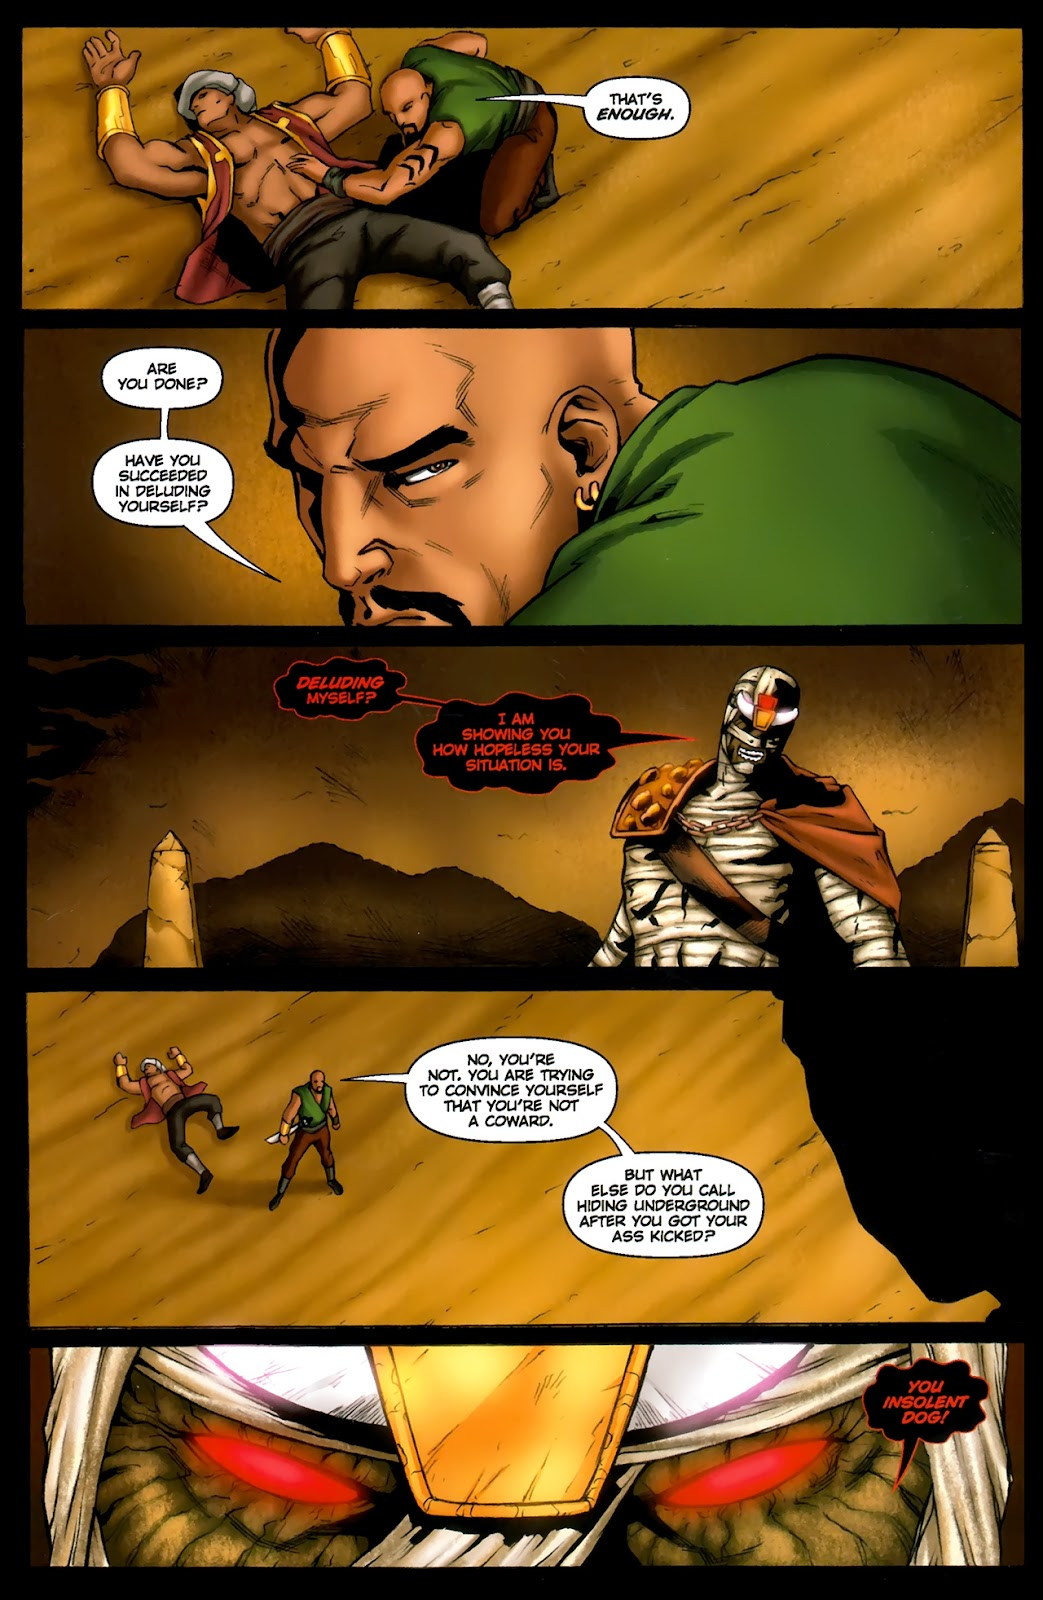 1001 Arabian Nights: The Adventures of Sinbad Issue #13 Page 8